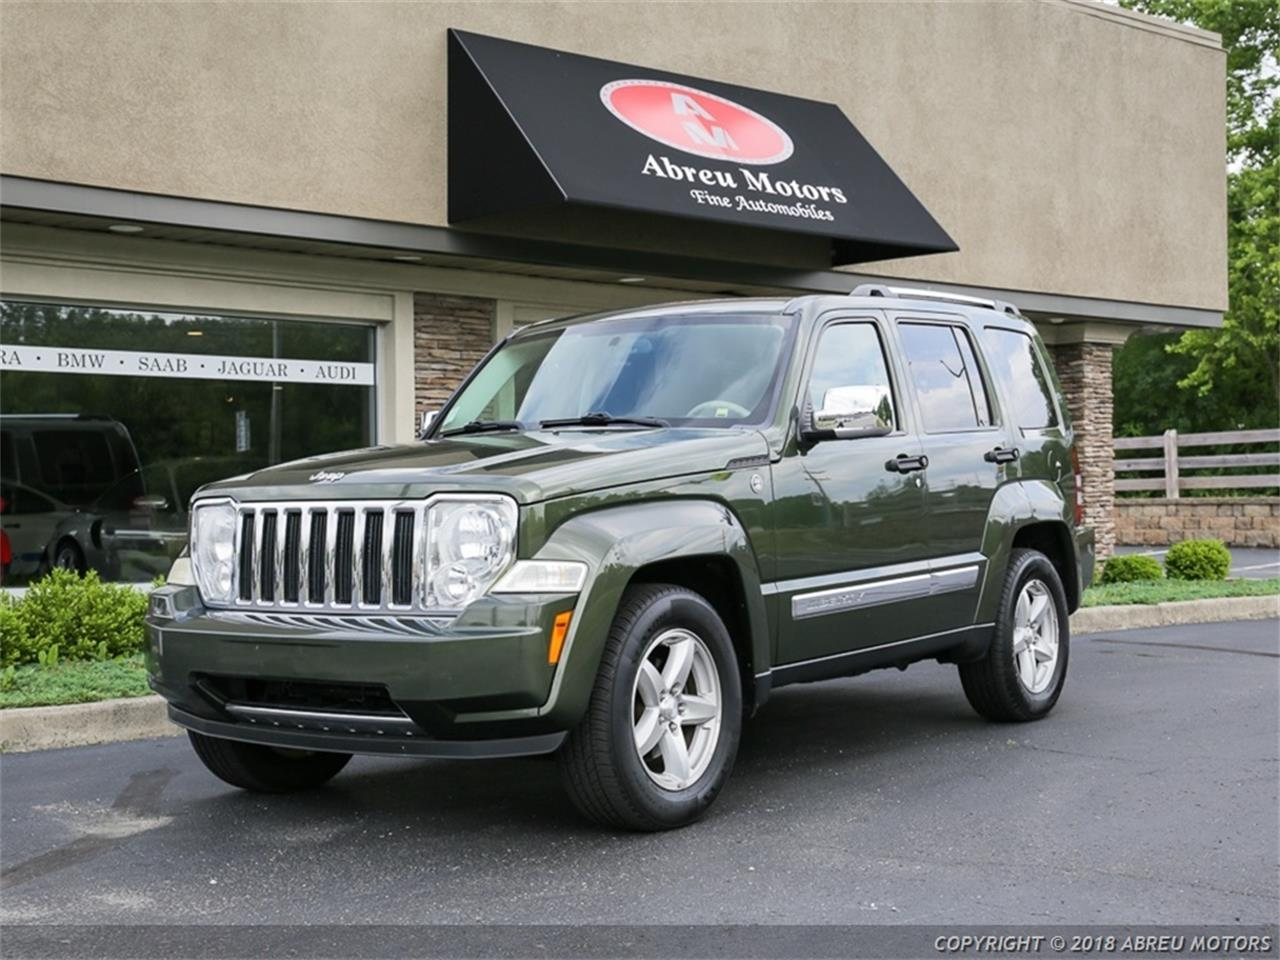 2008 Jeep Liberty For Sale >> For Sale 2008 Jeep Liberty In Carmel Indiana